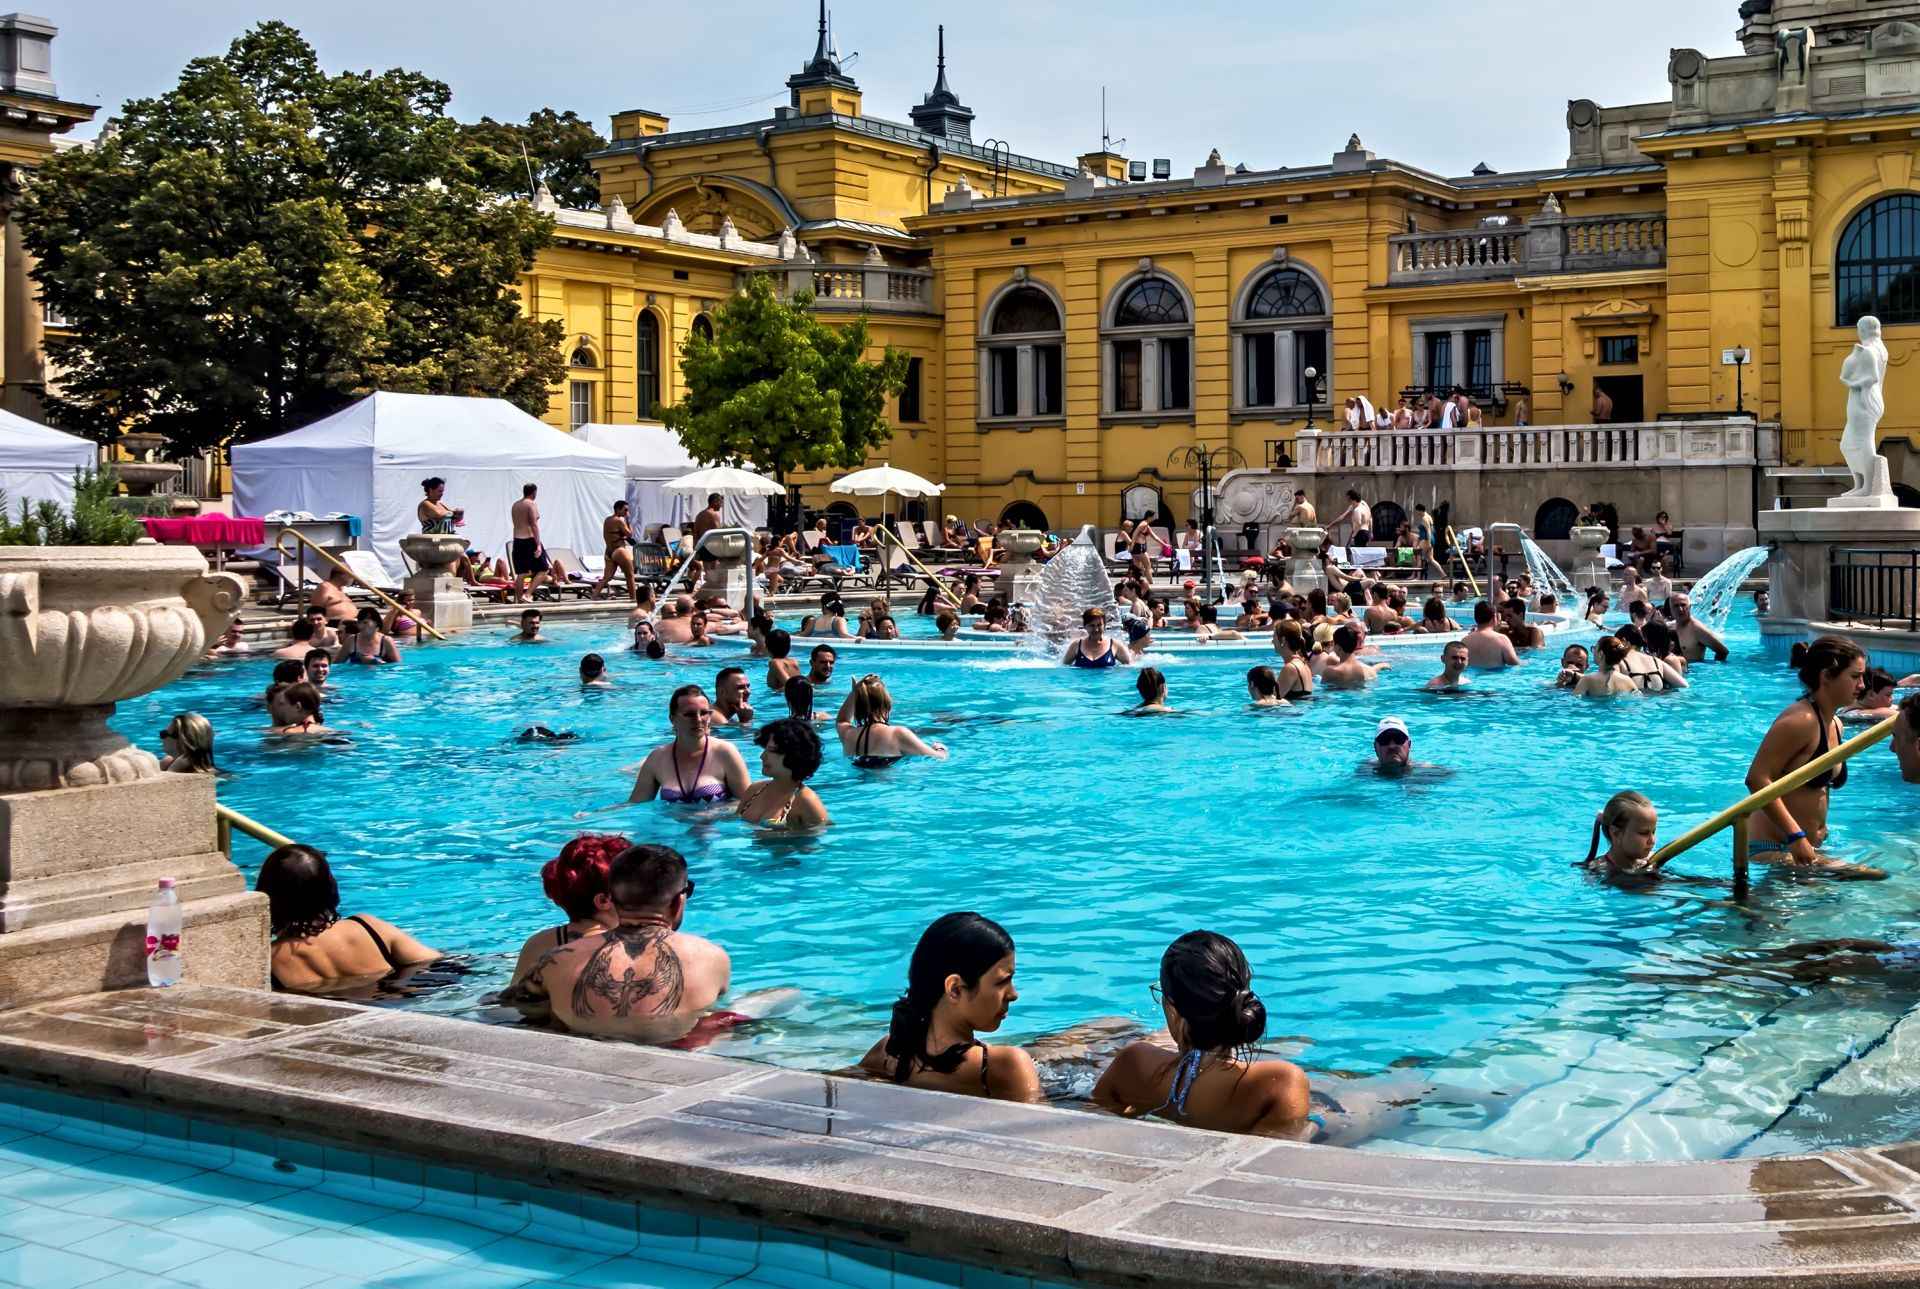 Szechenyi Spa Baths, Budapest. August 24, 2019